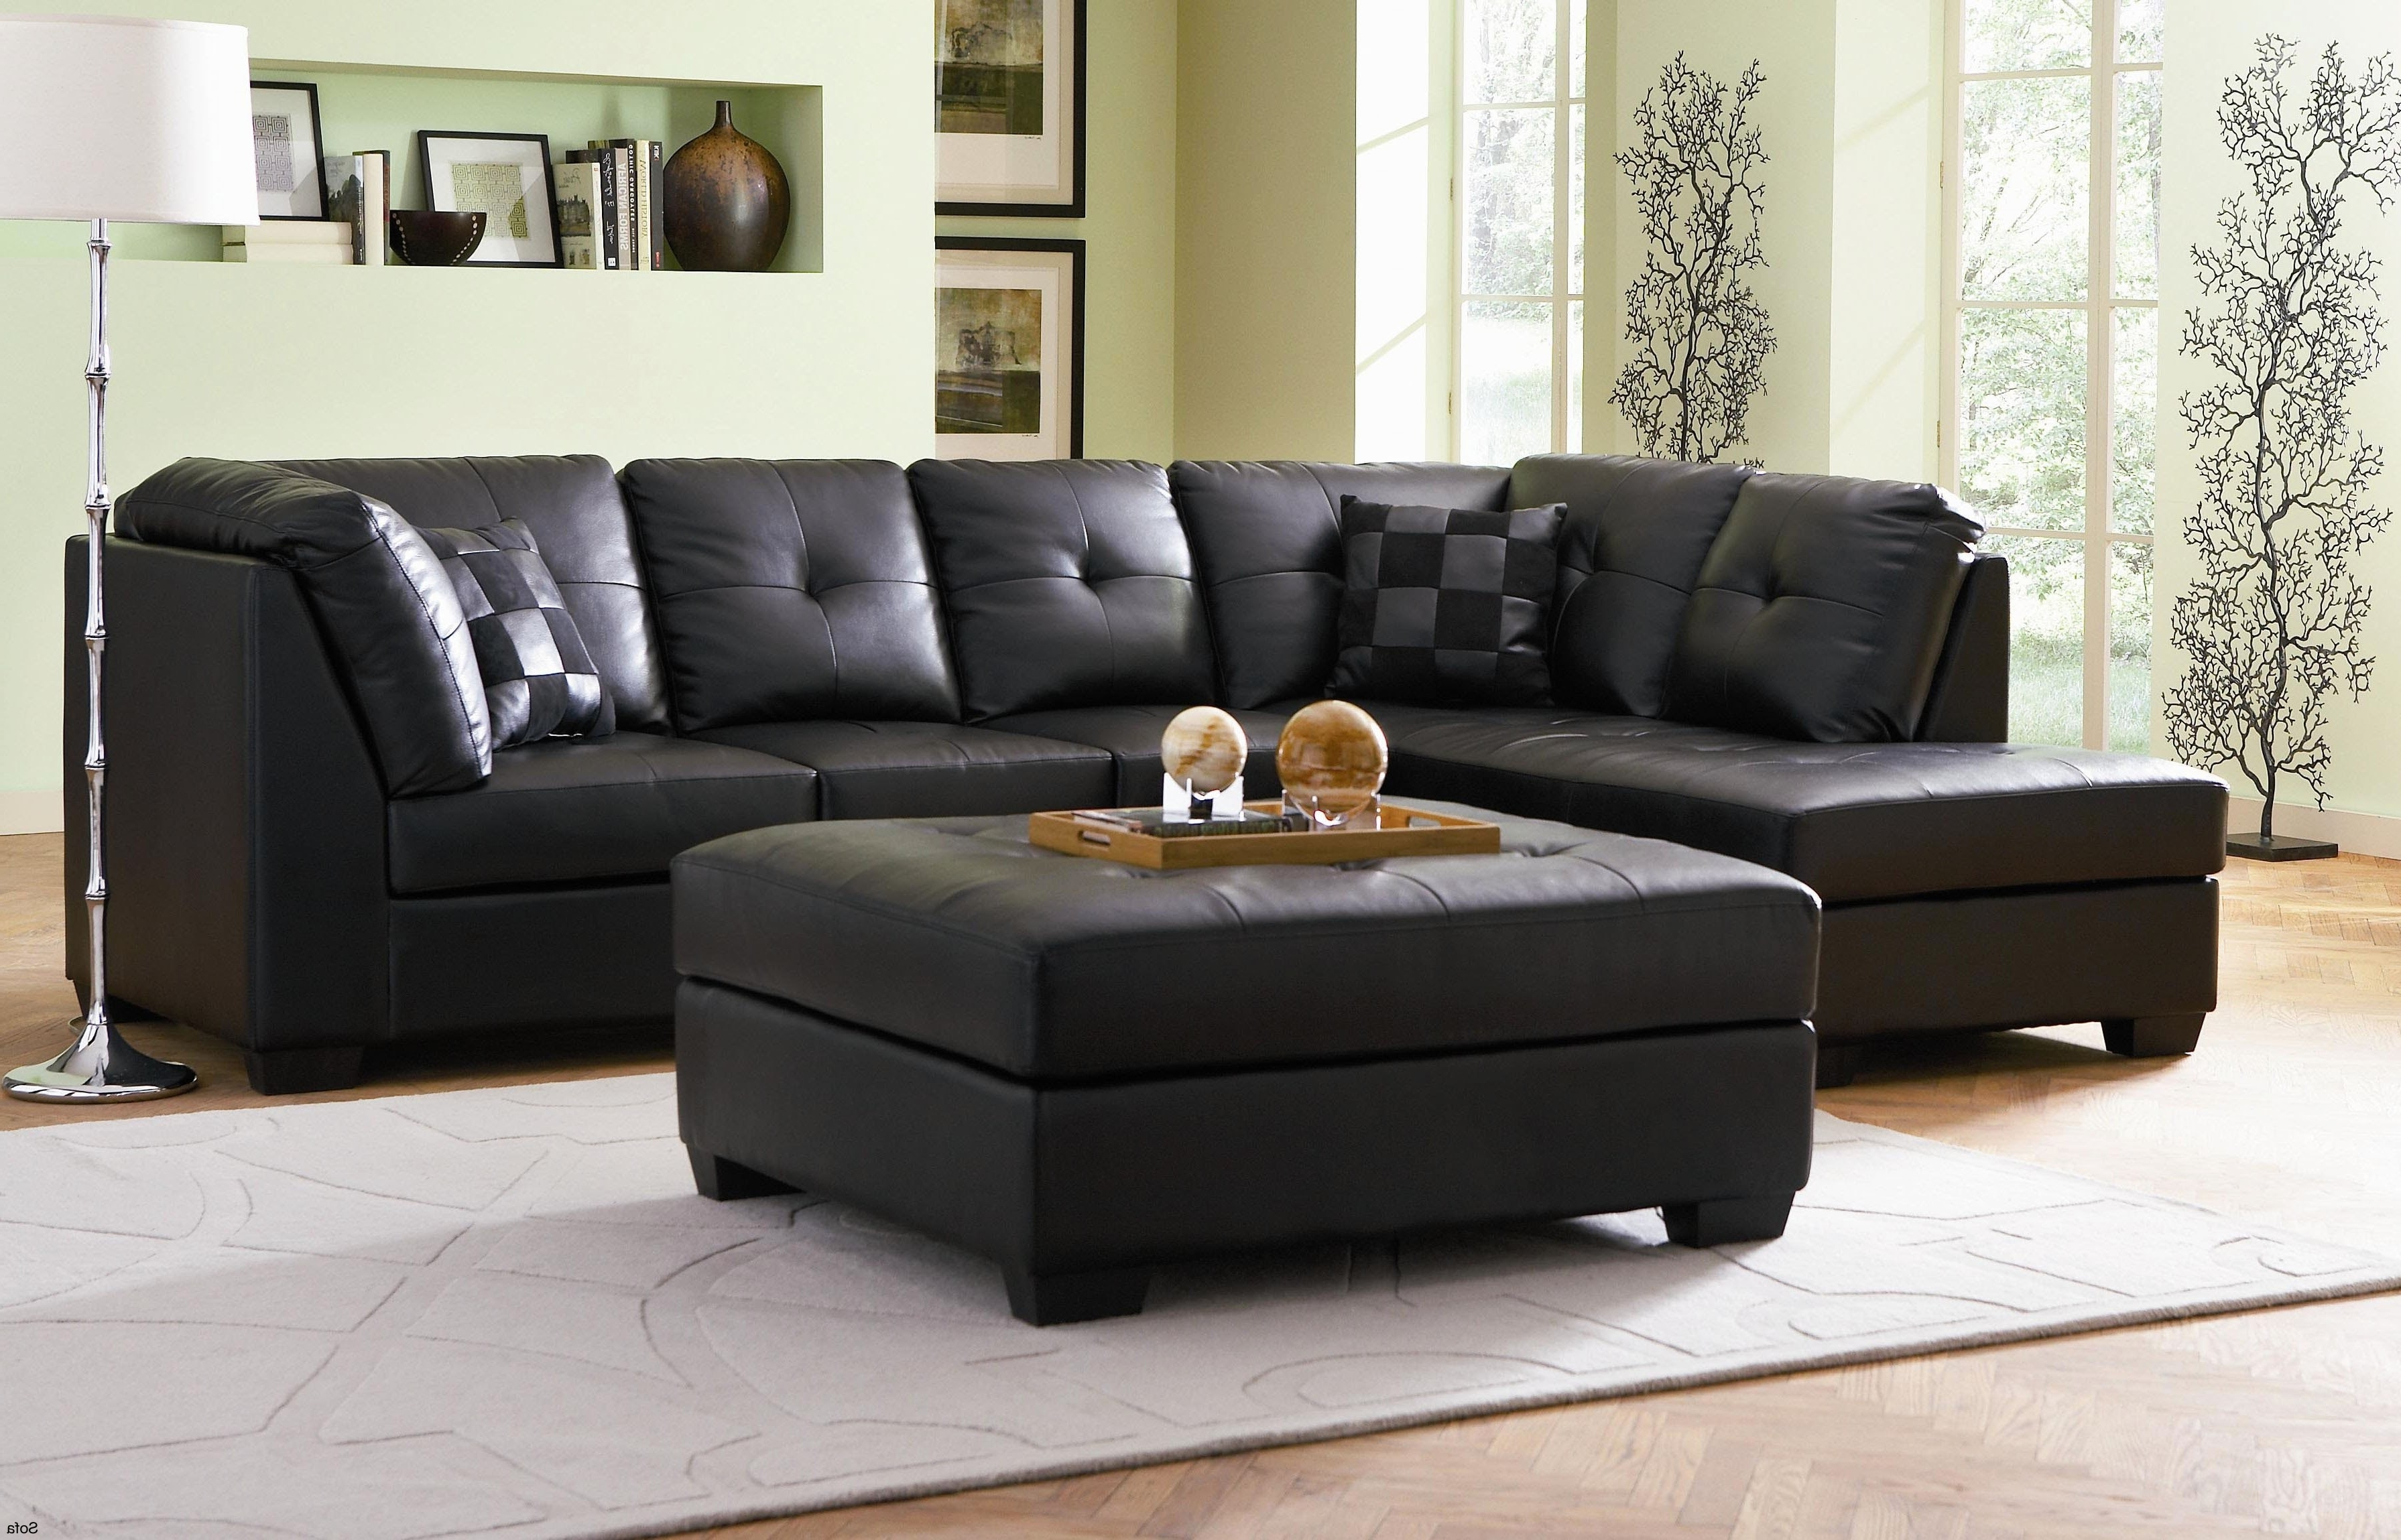 Sectional Sofas At Amazon In Popular Maxresdefault Amazon Sofa Set Cheap Sectional Sofas For Sale (View 11 of 15)